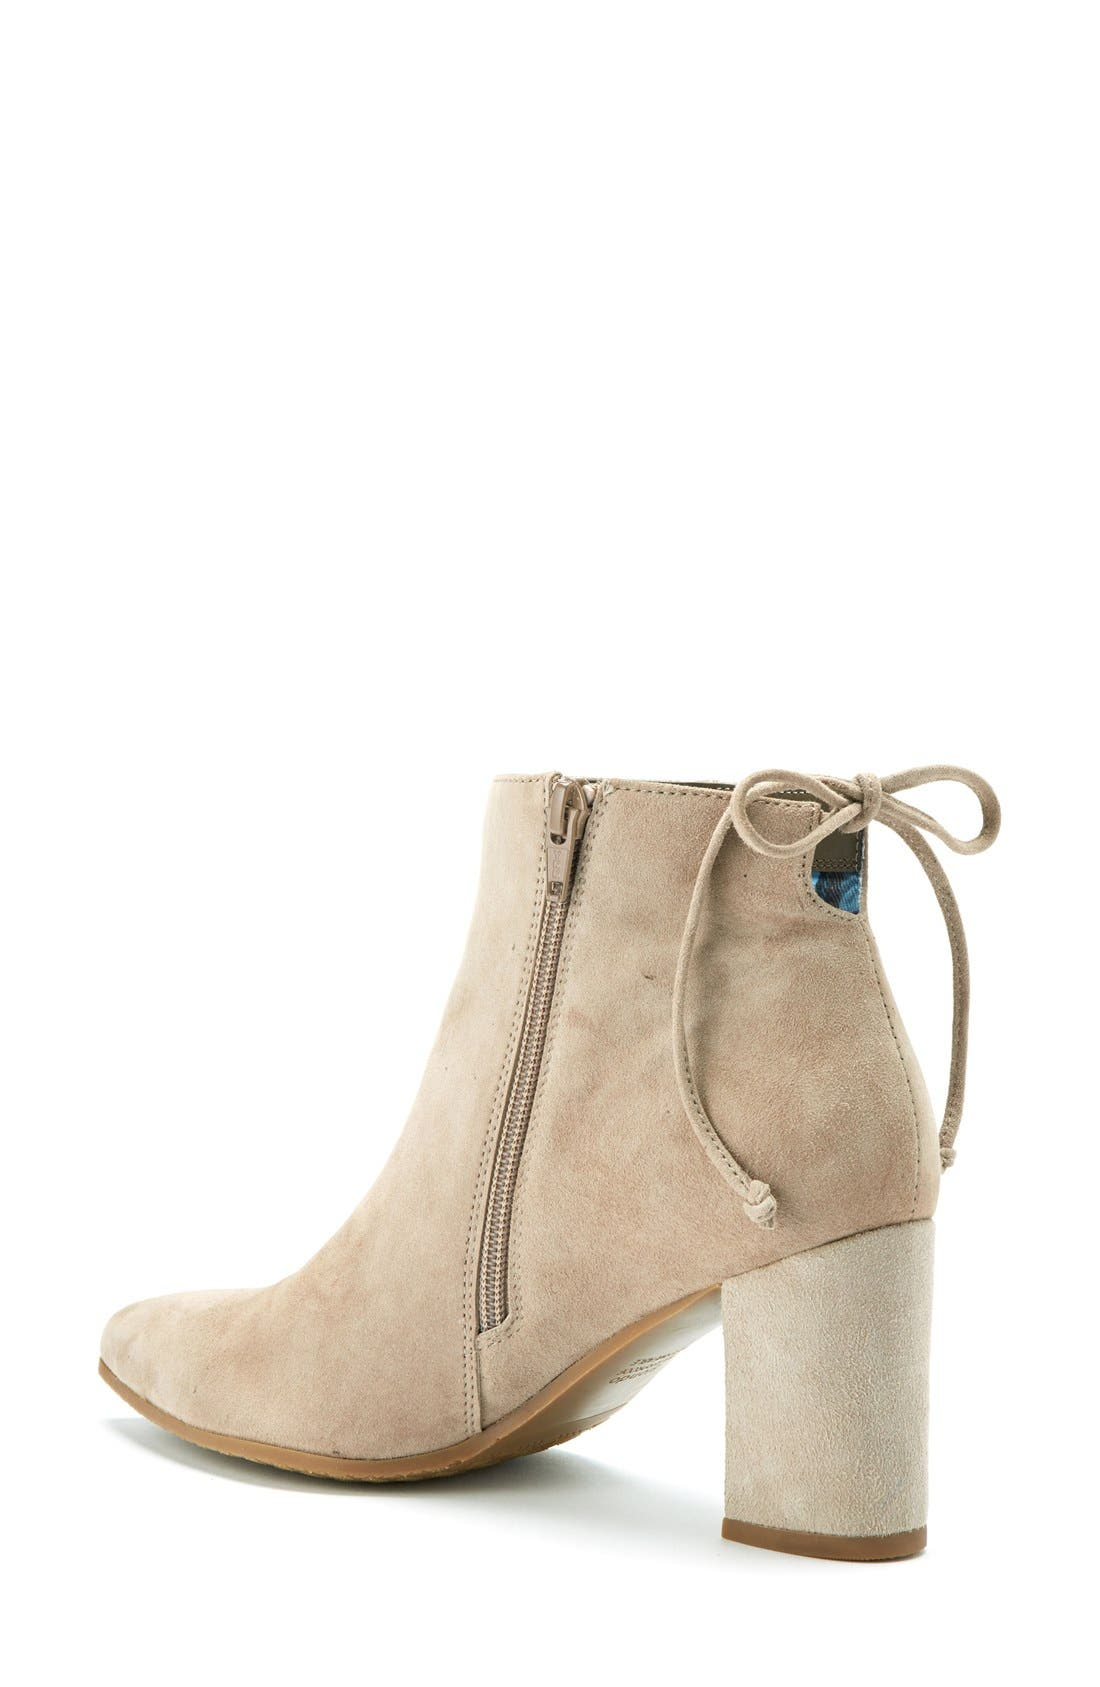 Tiana Waterproof Pointy Toe Bootie,                             Alternate thumbnail 2, color,                             Taupe Suede